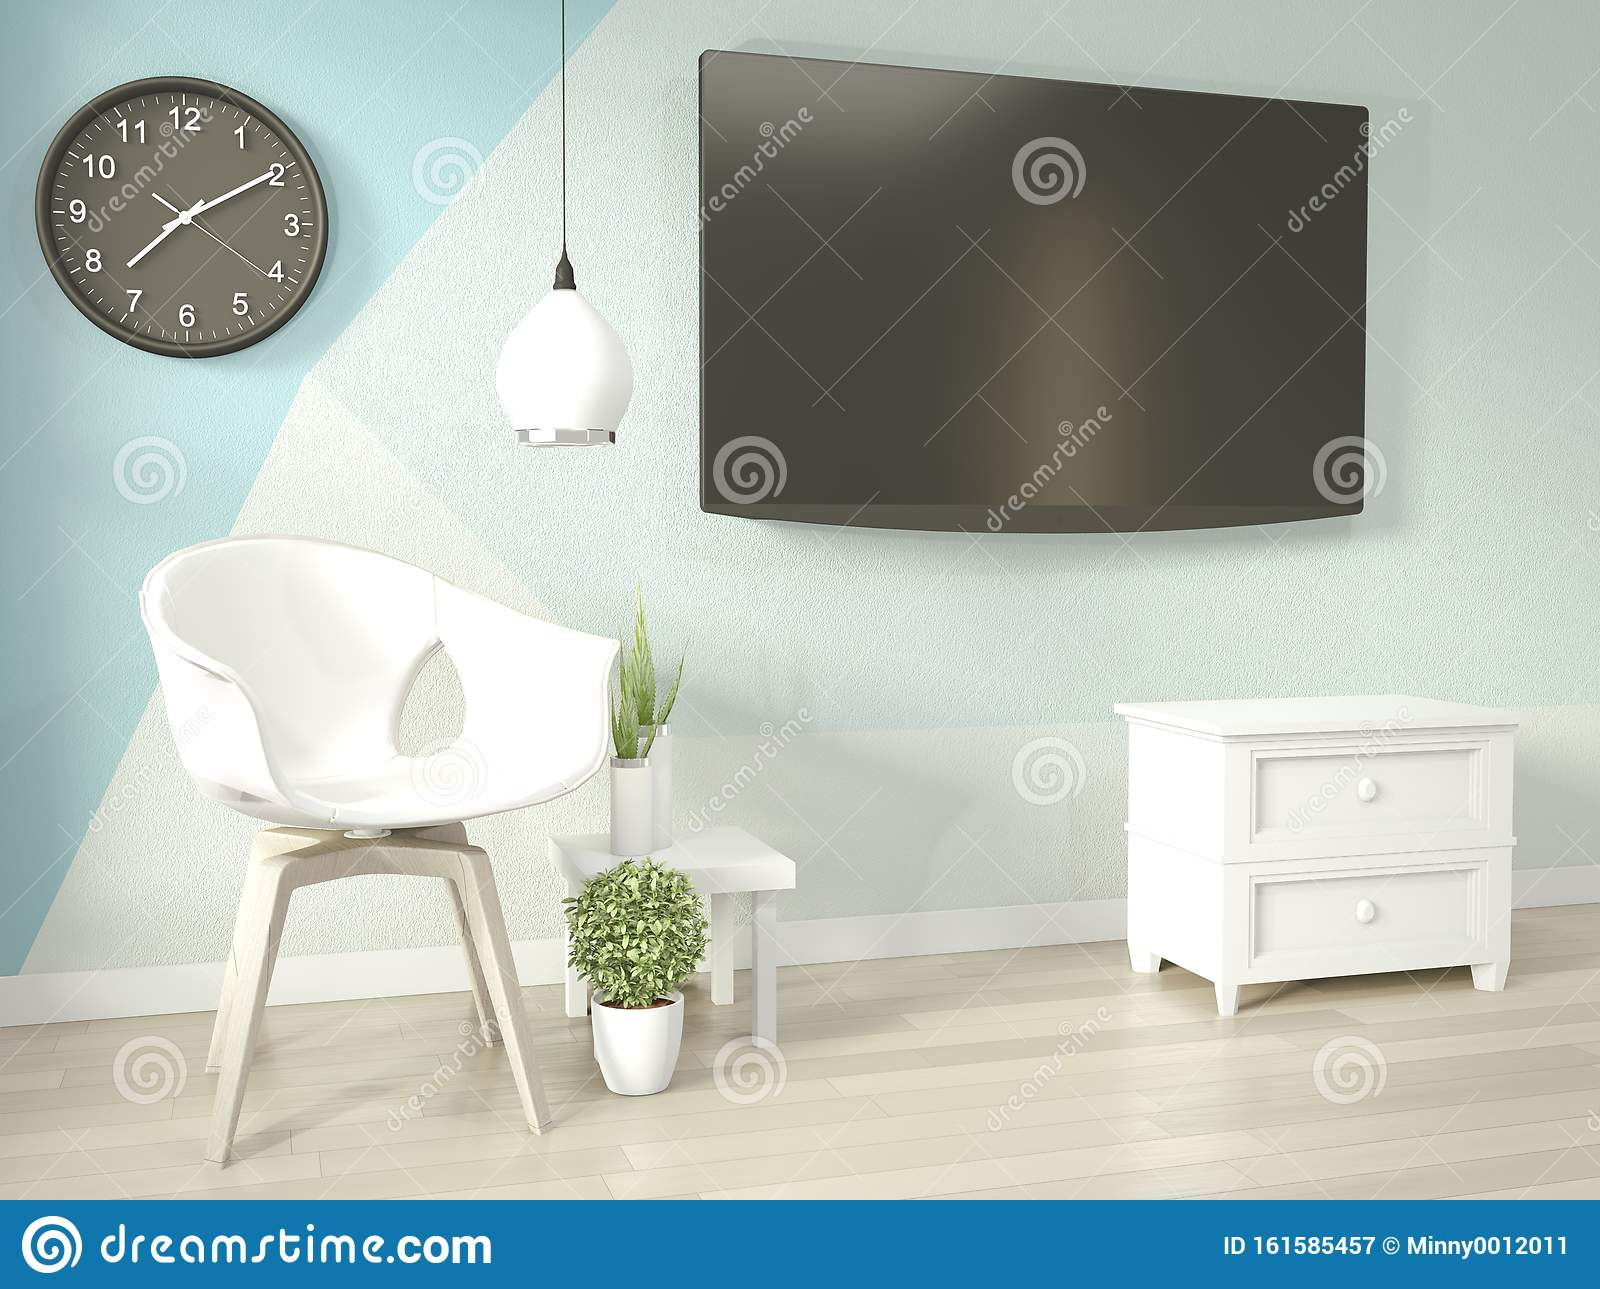 Interior Ideas Of Light Blue And White Living Room Geometric Wall Art Paint Design Color Full Style On Wooden Floor 3d Rendering Stock Illustration Illustration Of House Ideas 161585457,Stamped Concrete Driveway Designs